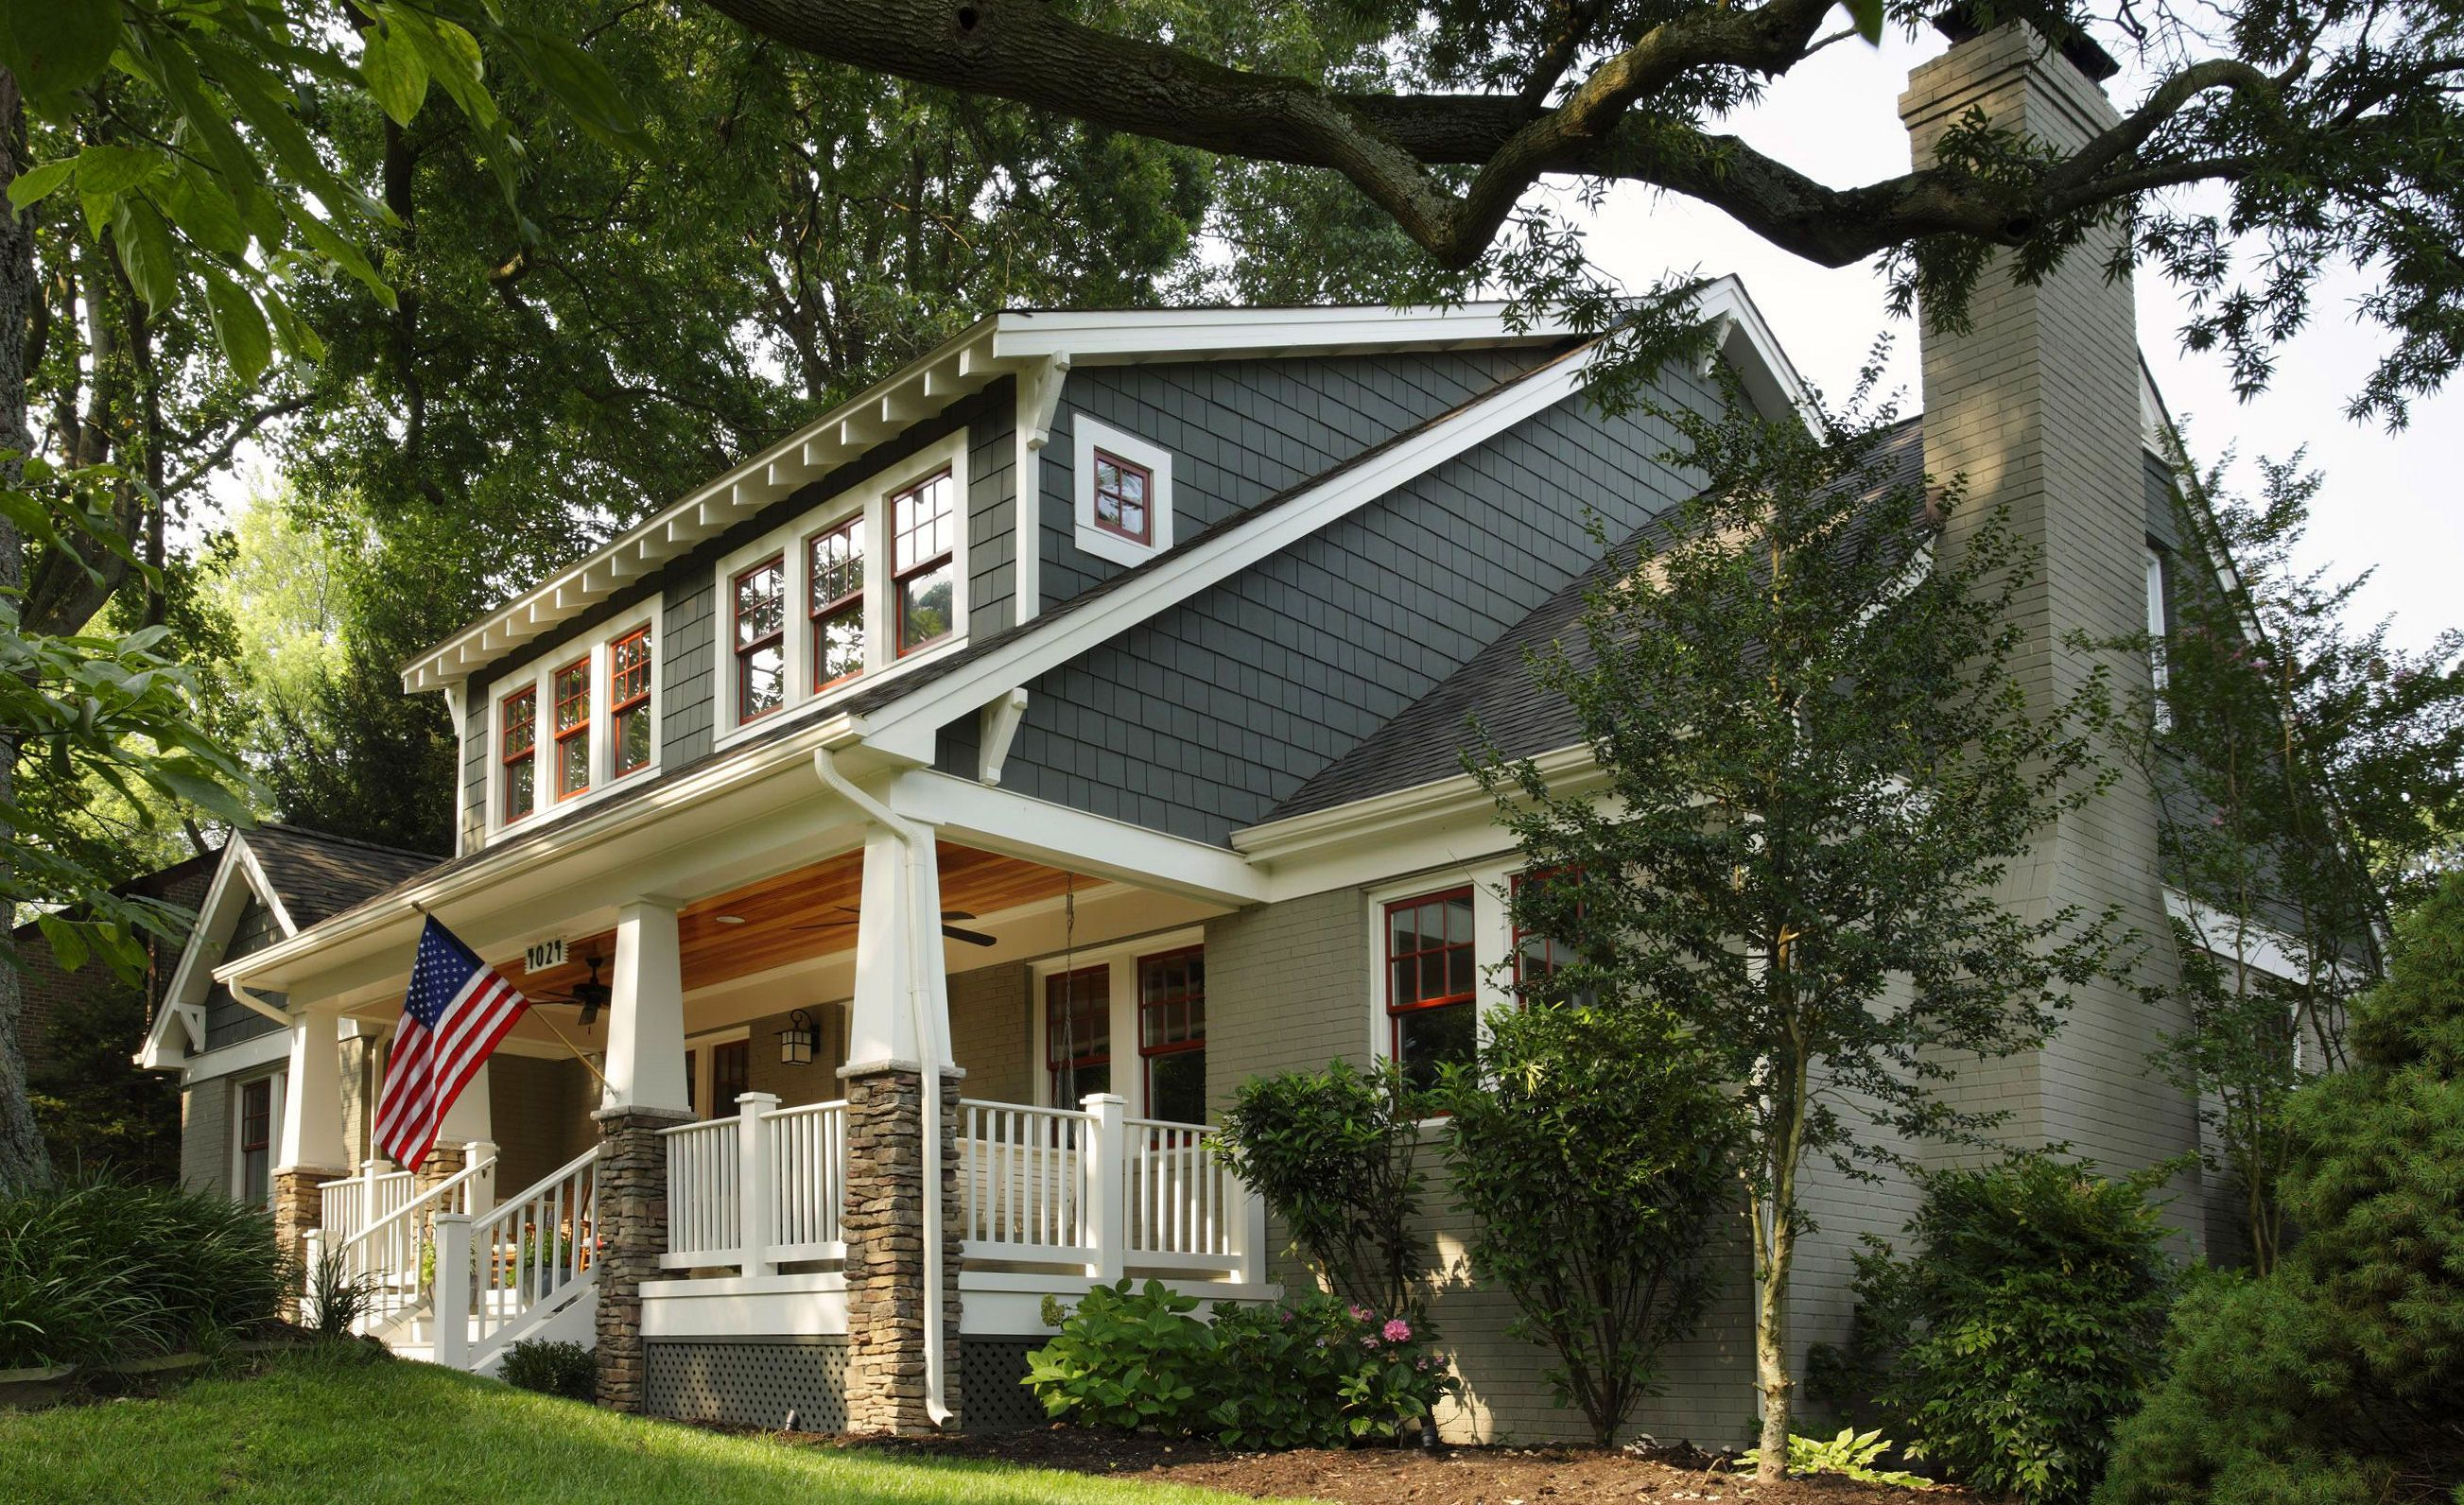 Craftsman exterior like the shed dormer front porch natural wood ceiling on porch